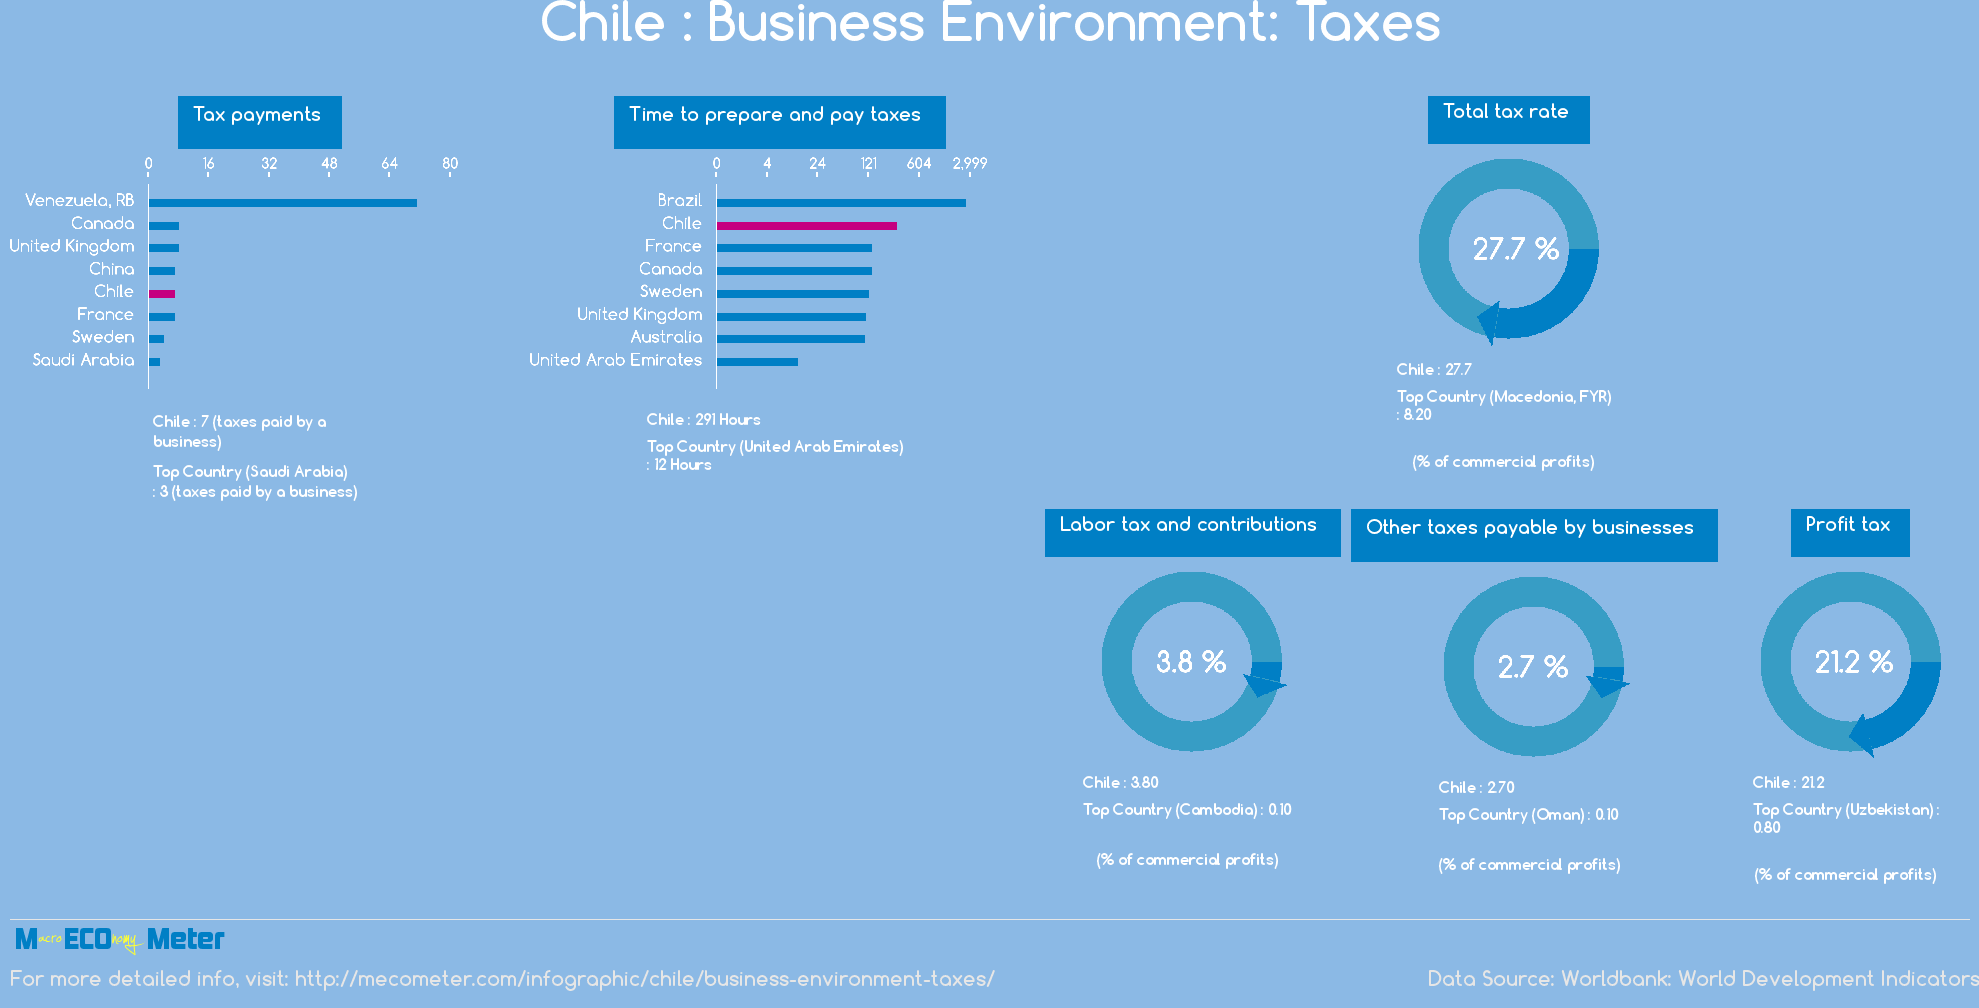 Chile : Business Environment: Taxes